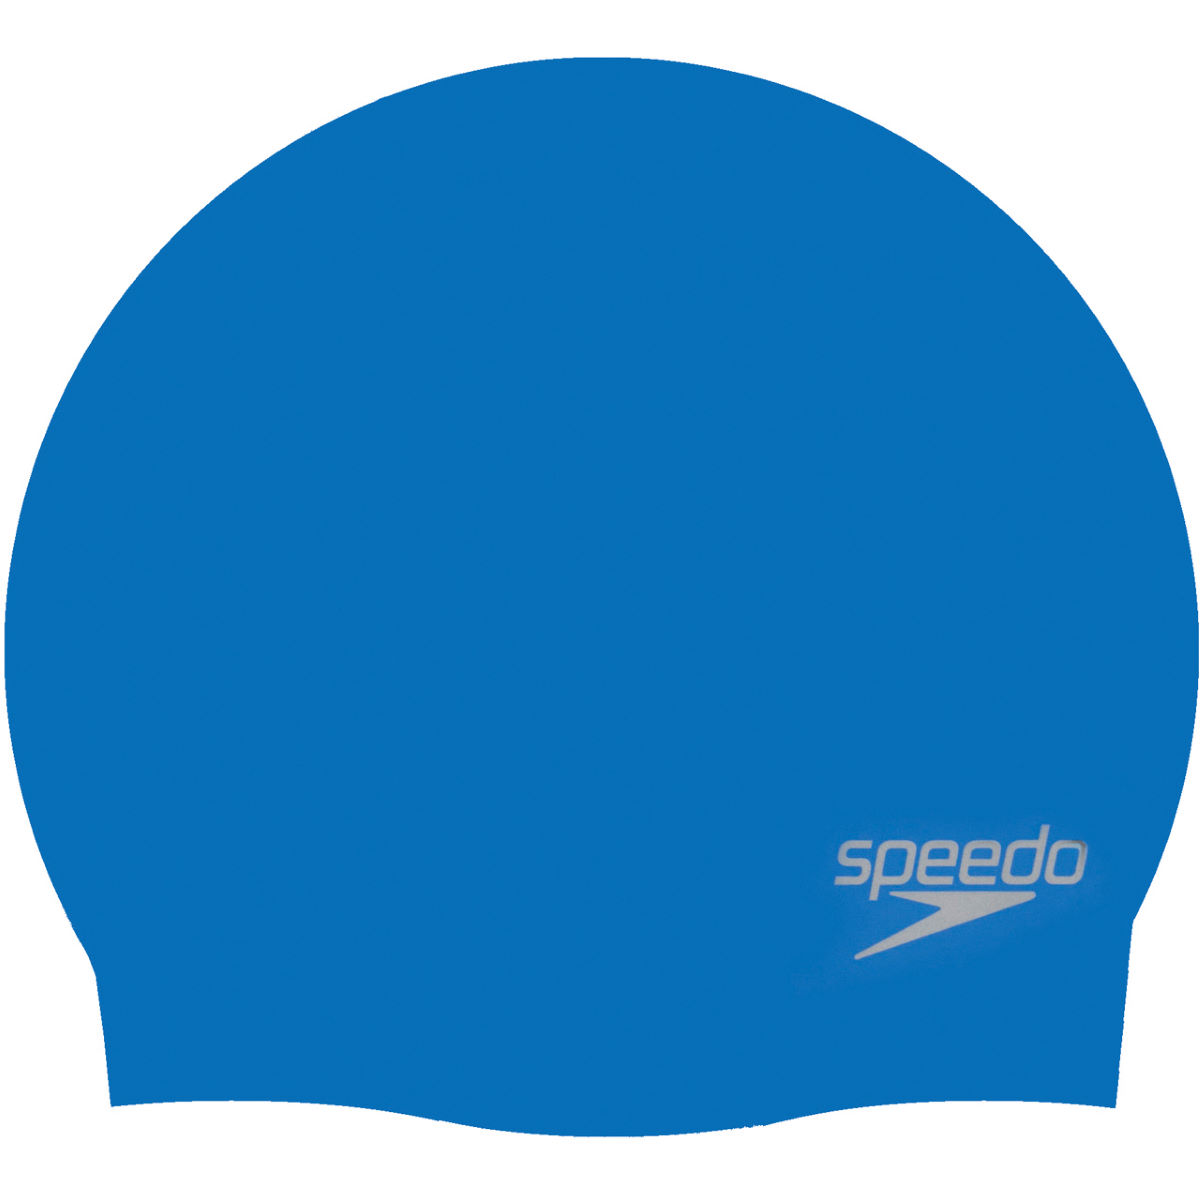 Image of Bonnet de bain Speedo (moulé en silicone) - Taille unique Neon Blue